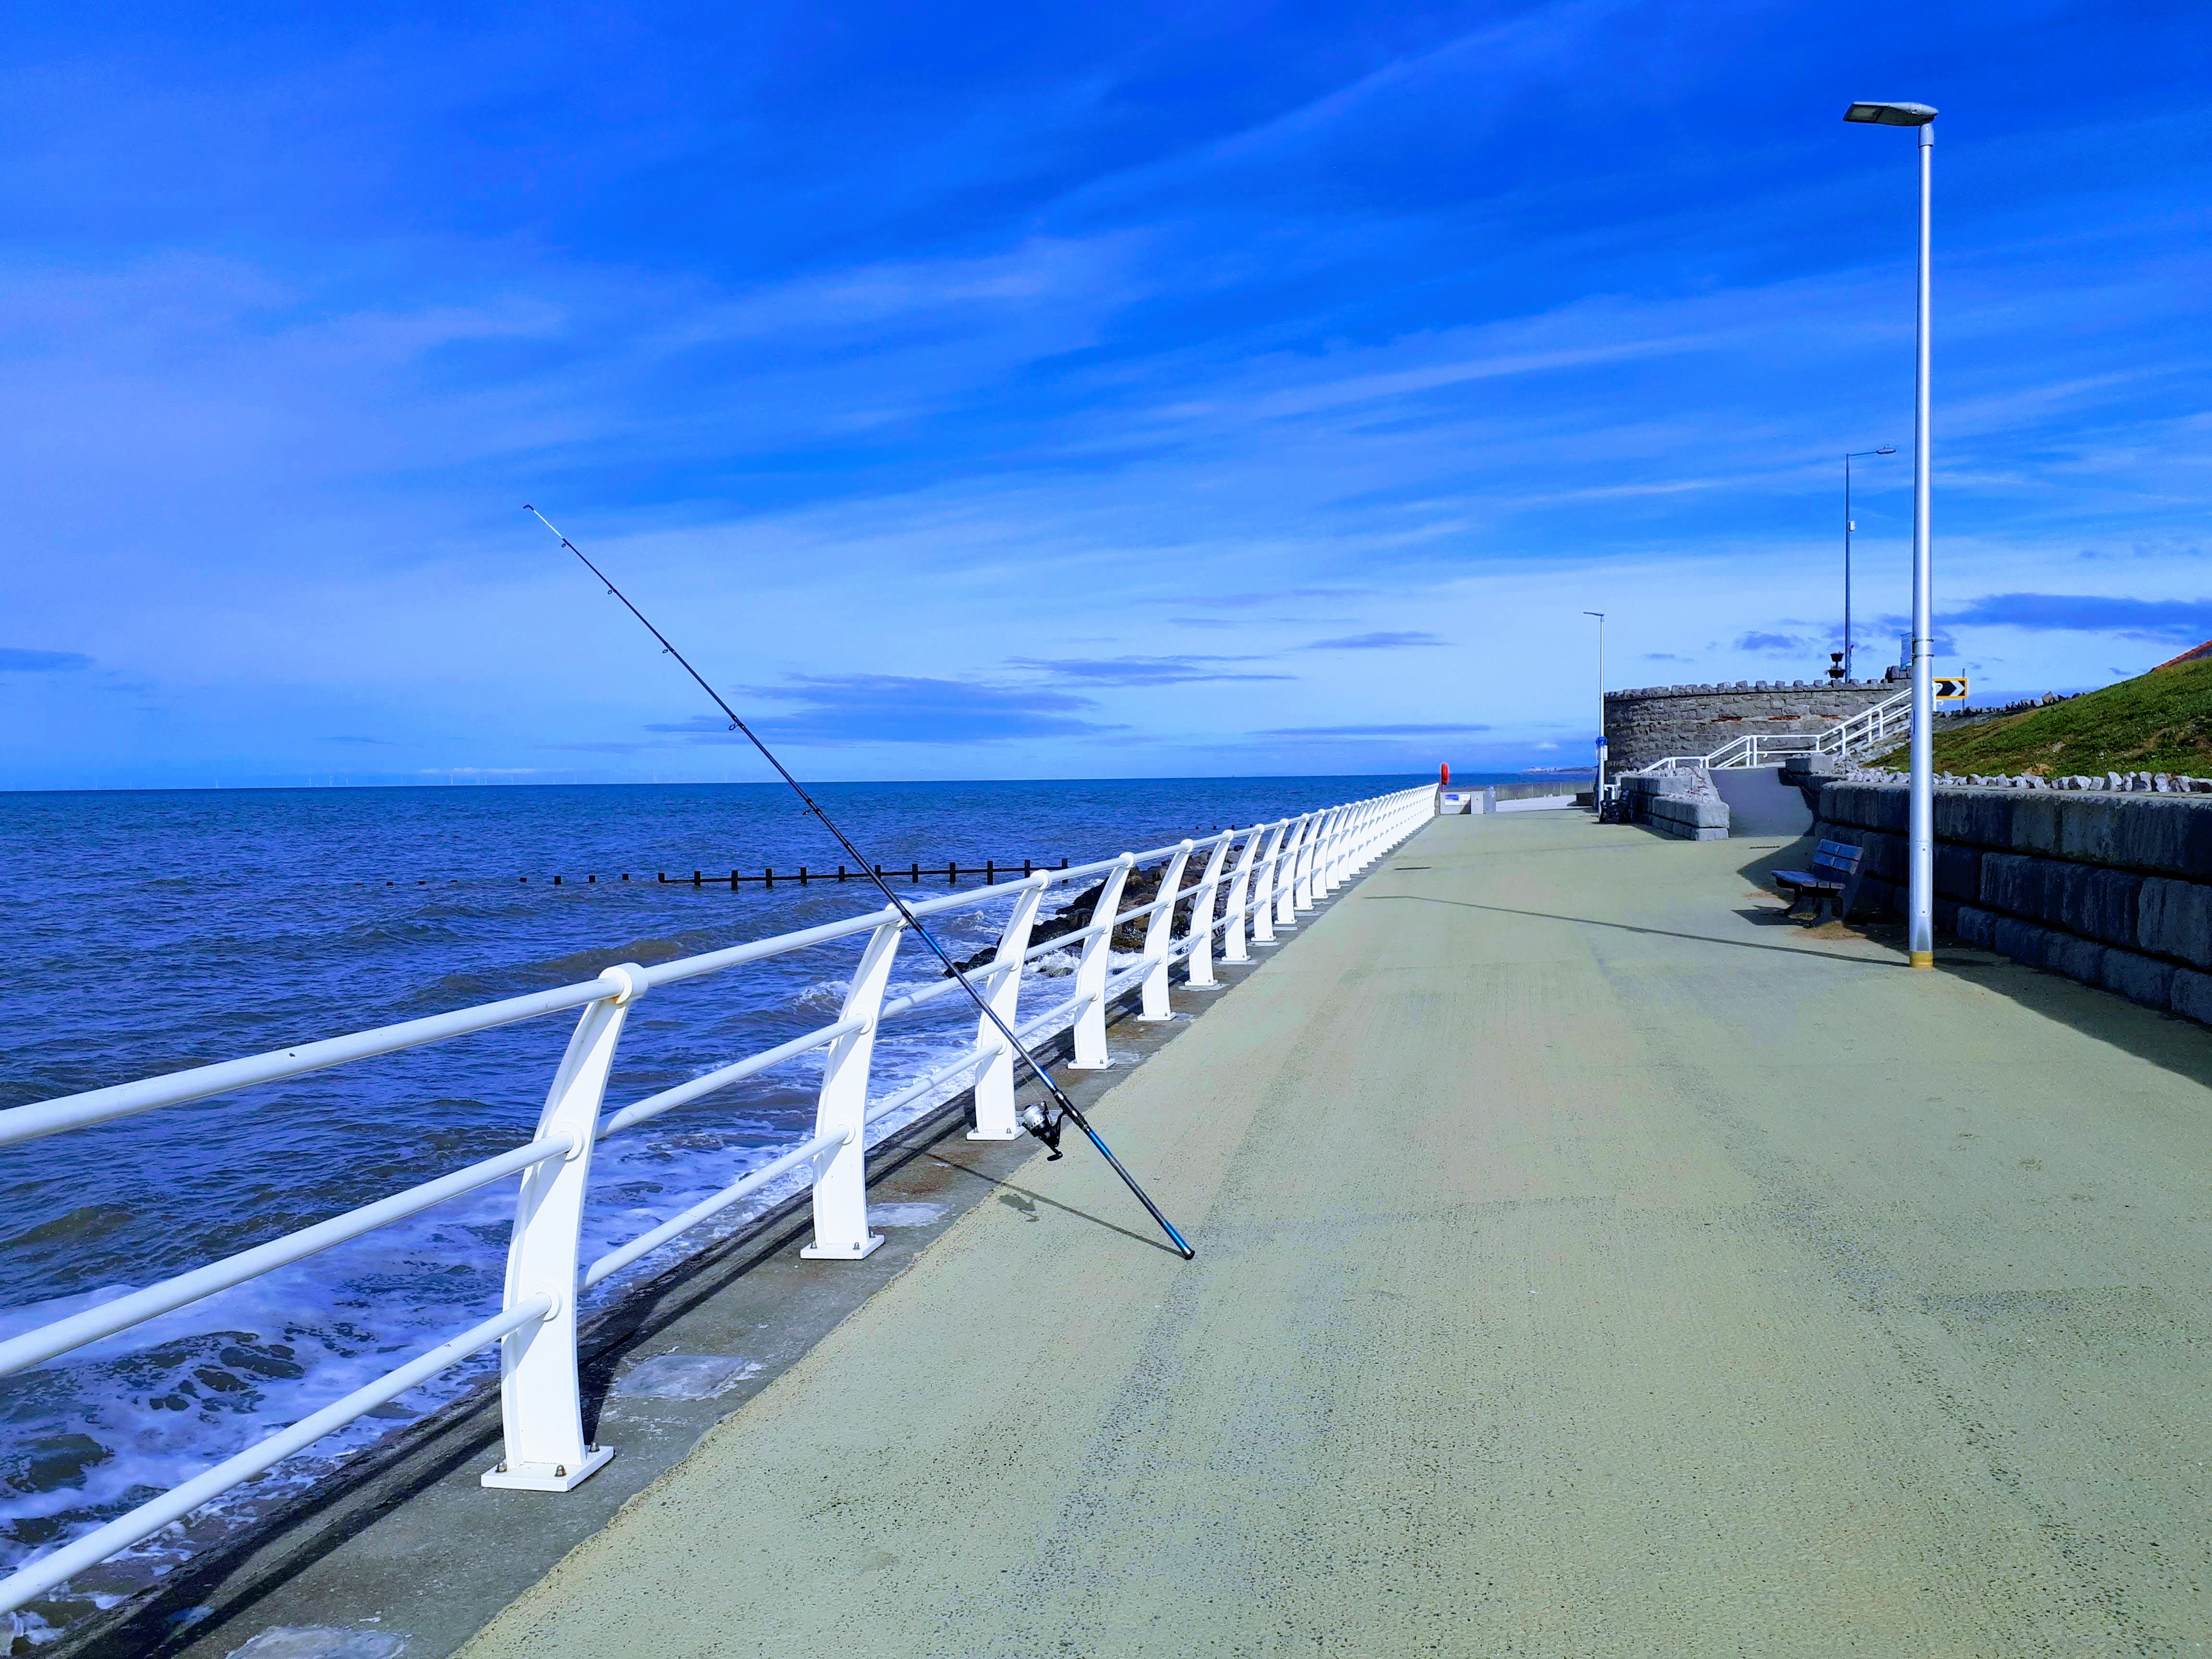 A picture of my fishing setup while fishing at Splash Point in Rhyl